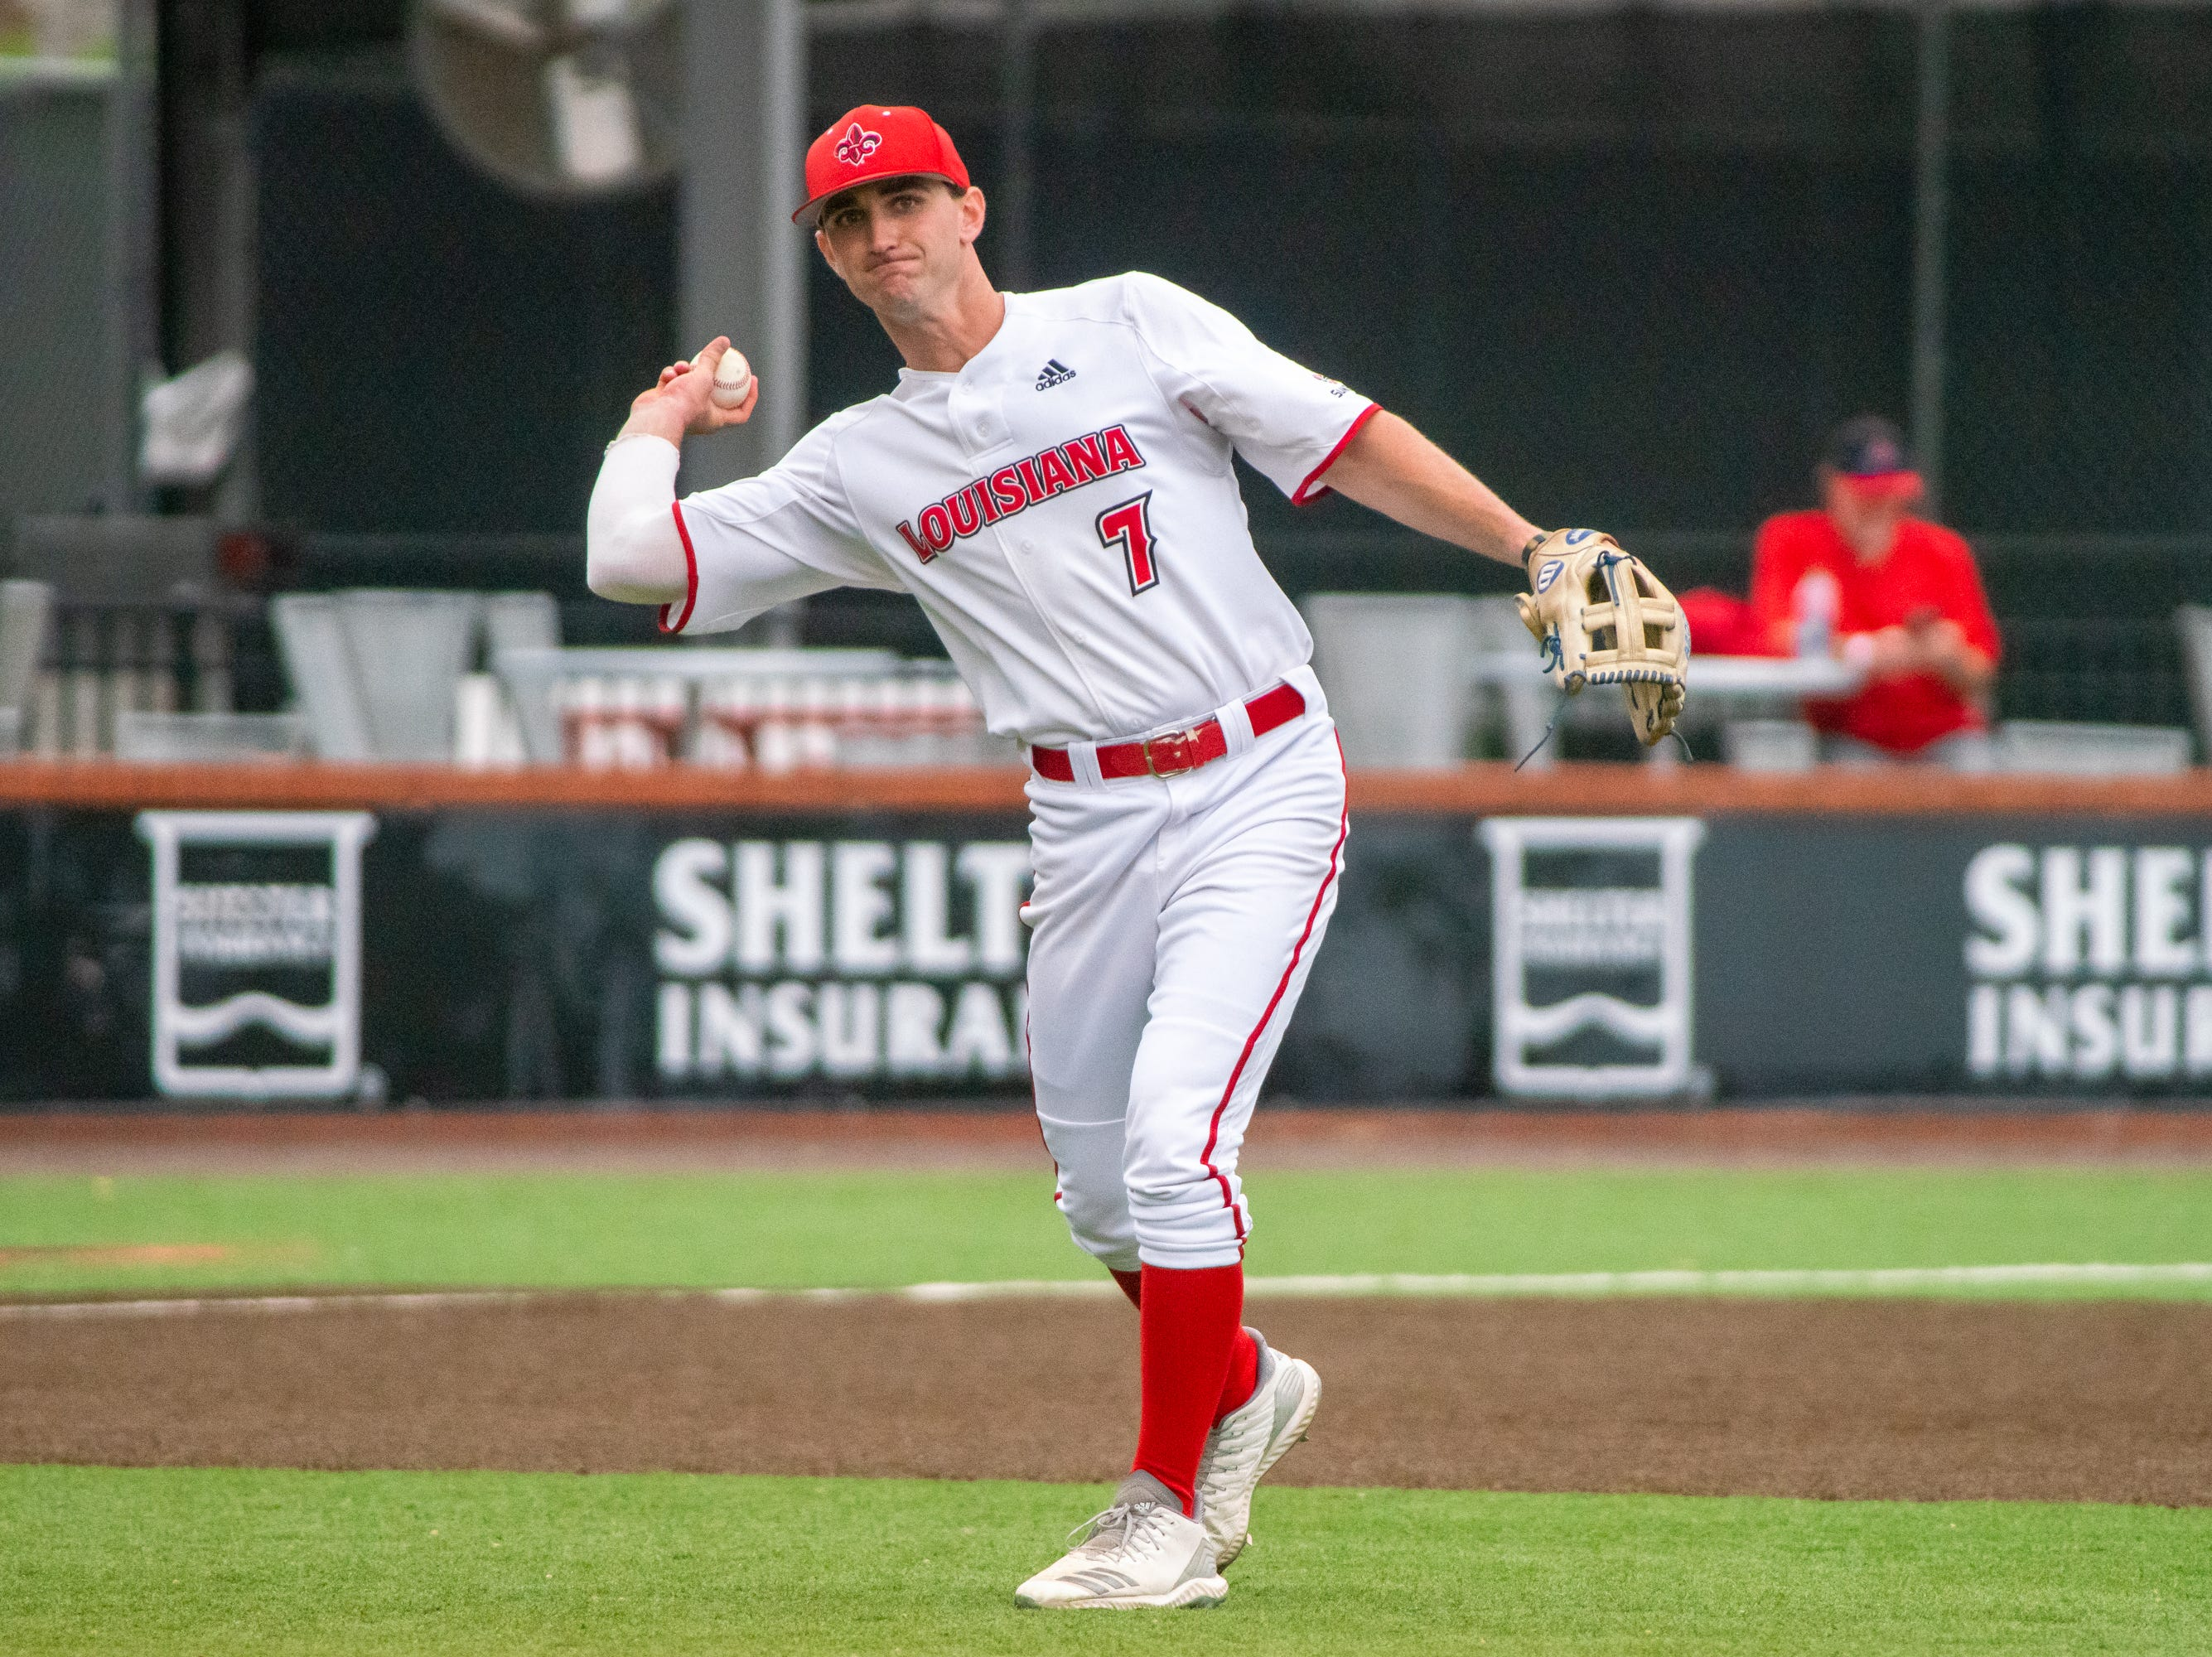 """UL's O'Neal Lochridge practices his throw in between innings as the Ragin' Cajuns take on the South Alabama Jaguars at M.L. """"Tigue"""" Moore Field on Saturday, April 13, 2019."""